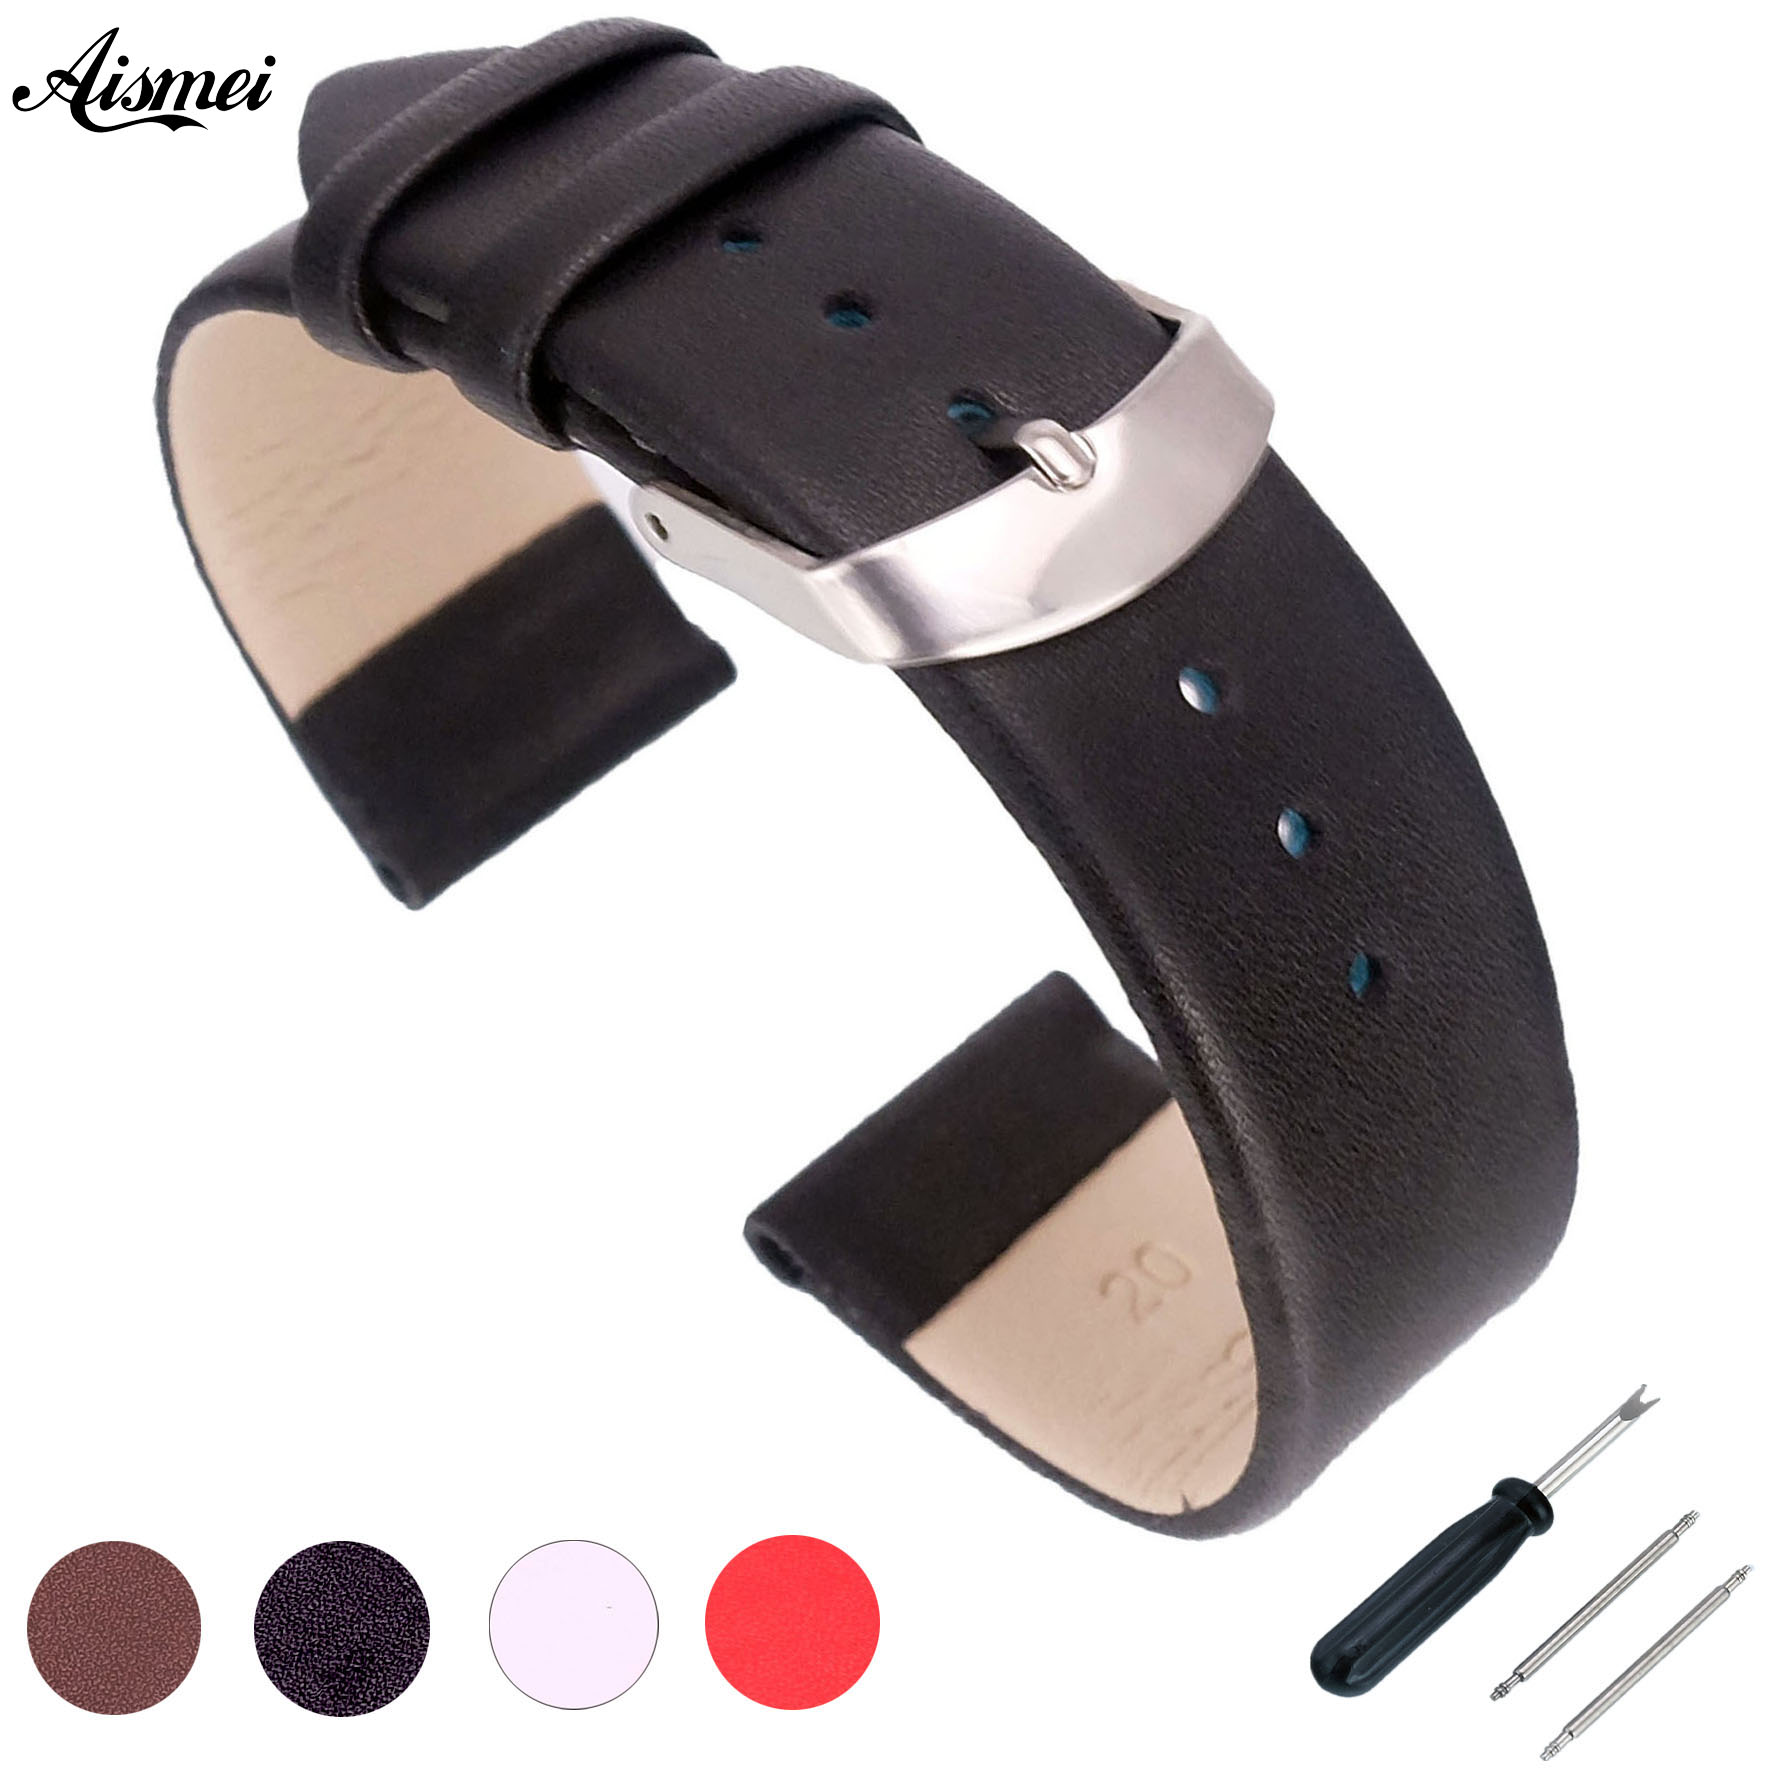 2018 Watch Accessories Pin buckle Watch Bracelet Belt Soft Genuine Leather Watch Band Watch Strap 12 14 16 18 20 22mm Watchbands купить в Москве 2019